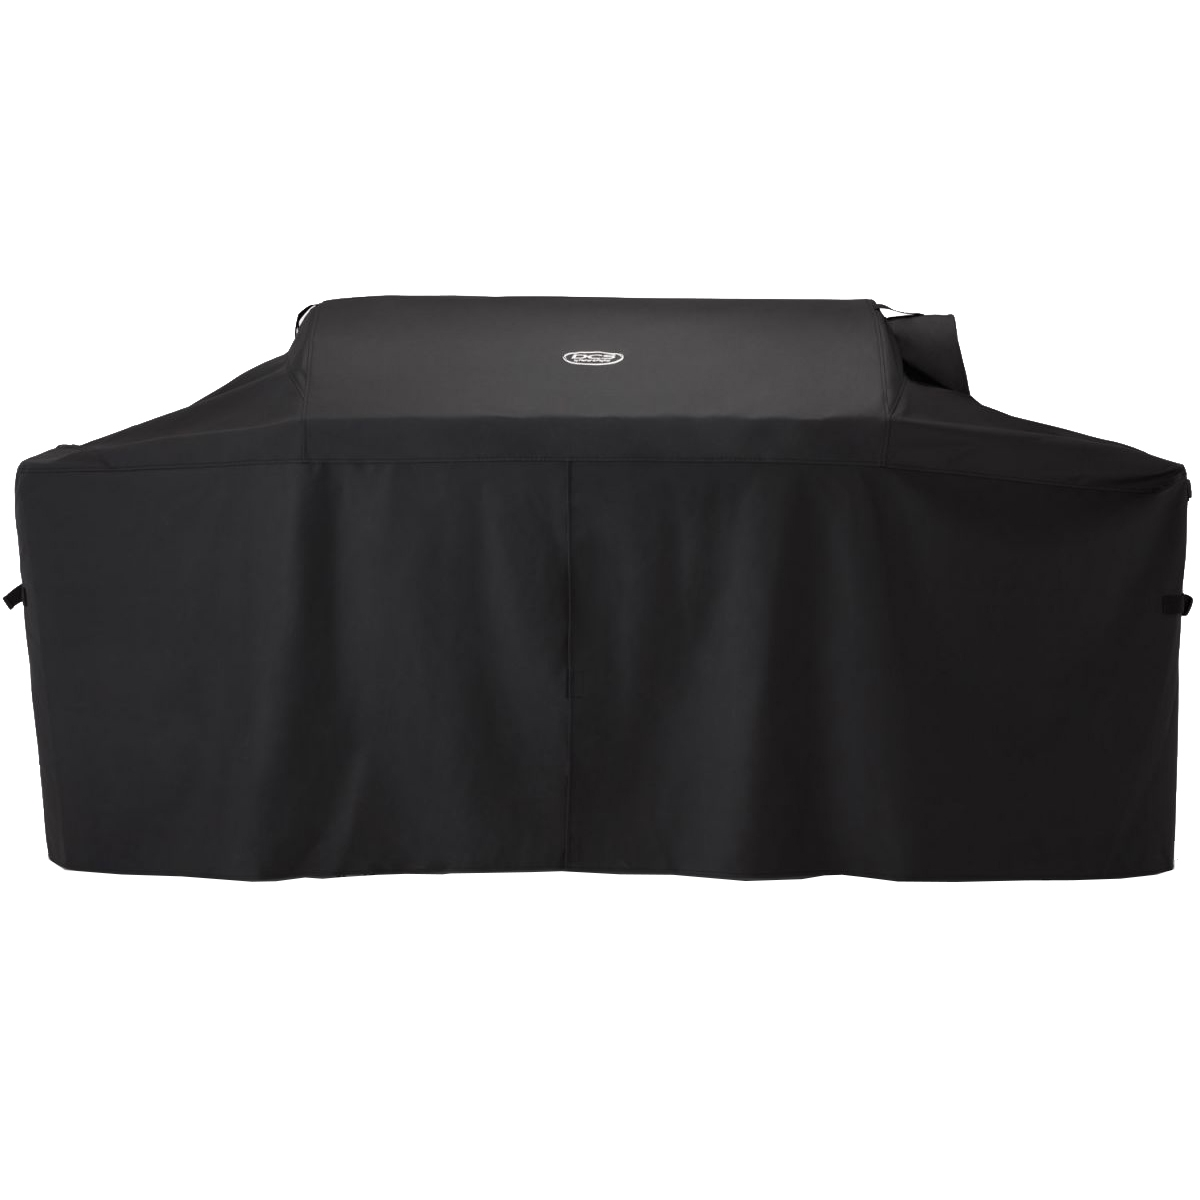 DCS Grill Cover for 48 inch Cart Mounted Grills with Side Burner